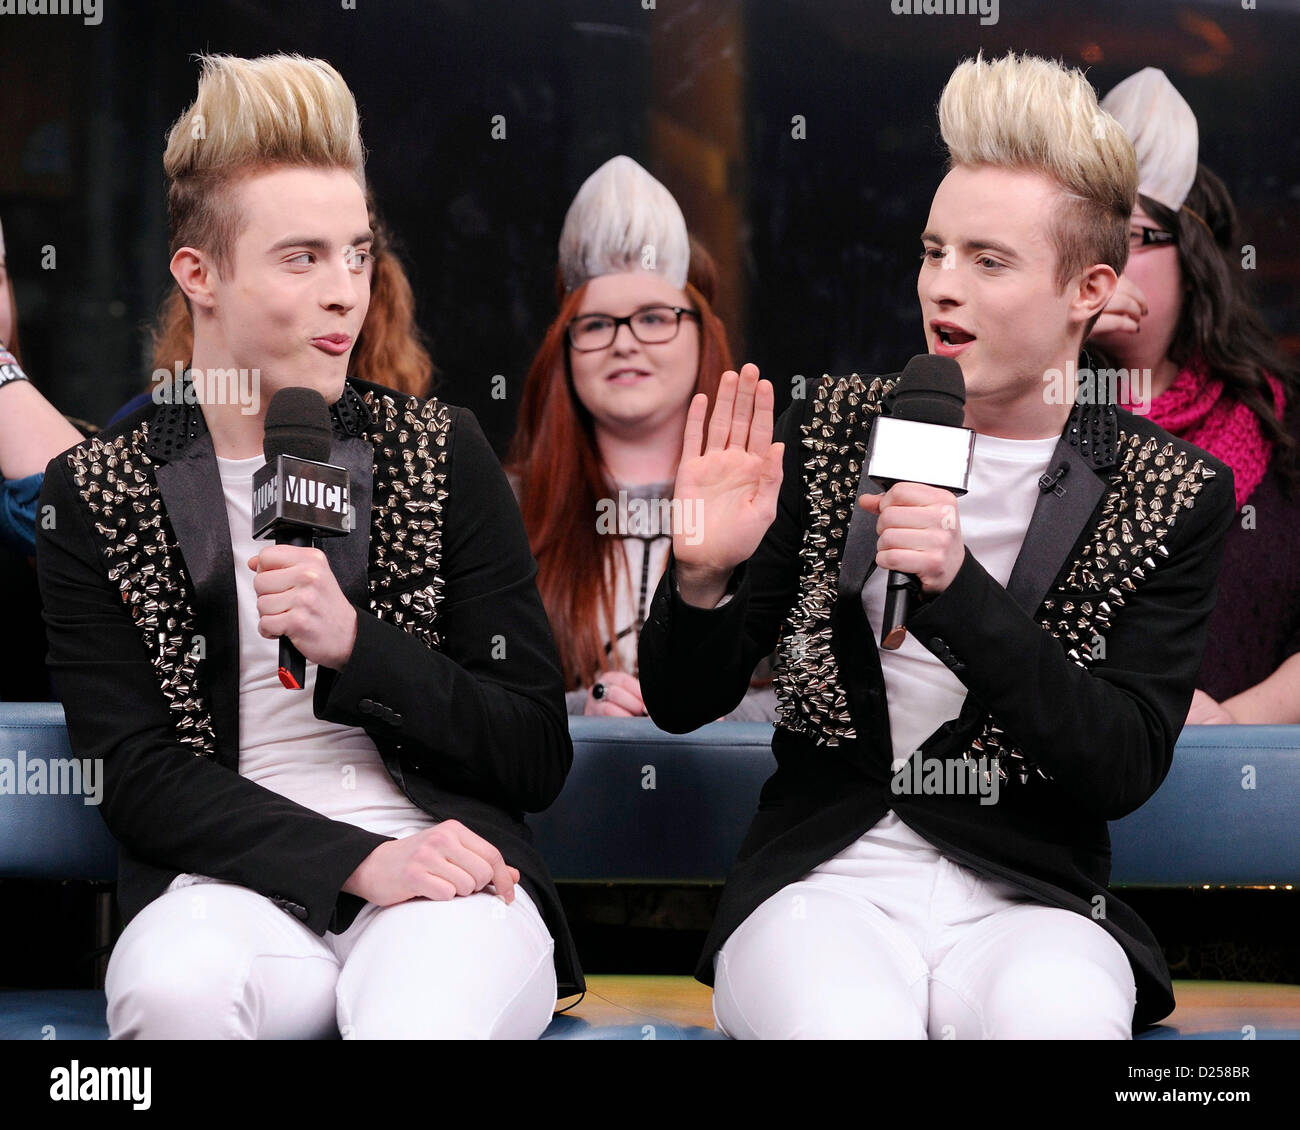 Toronto canada 14th january 2013 irish identical twins pop duo jedward john